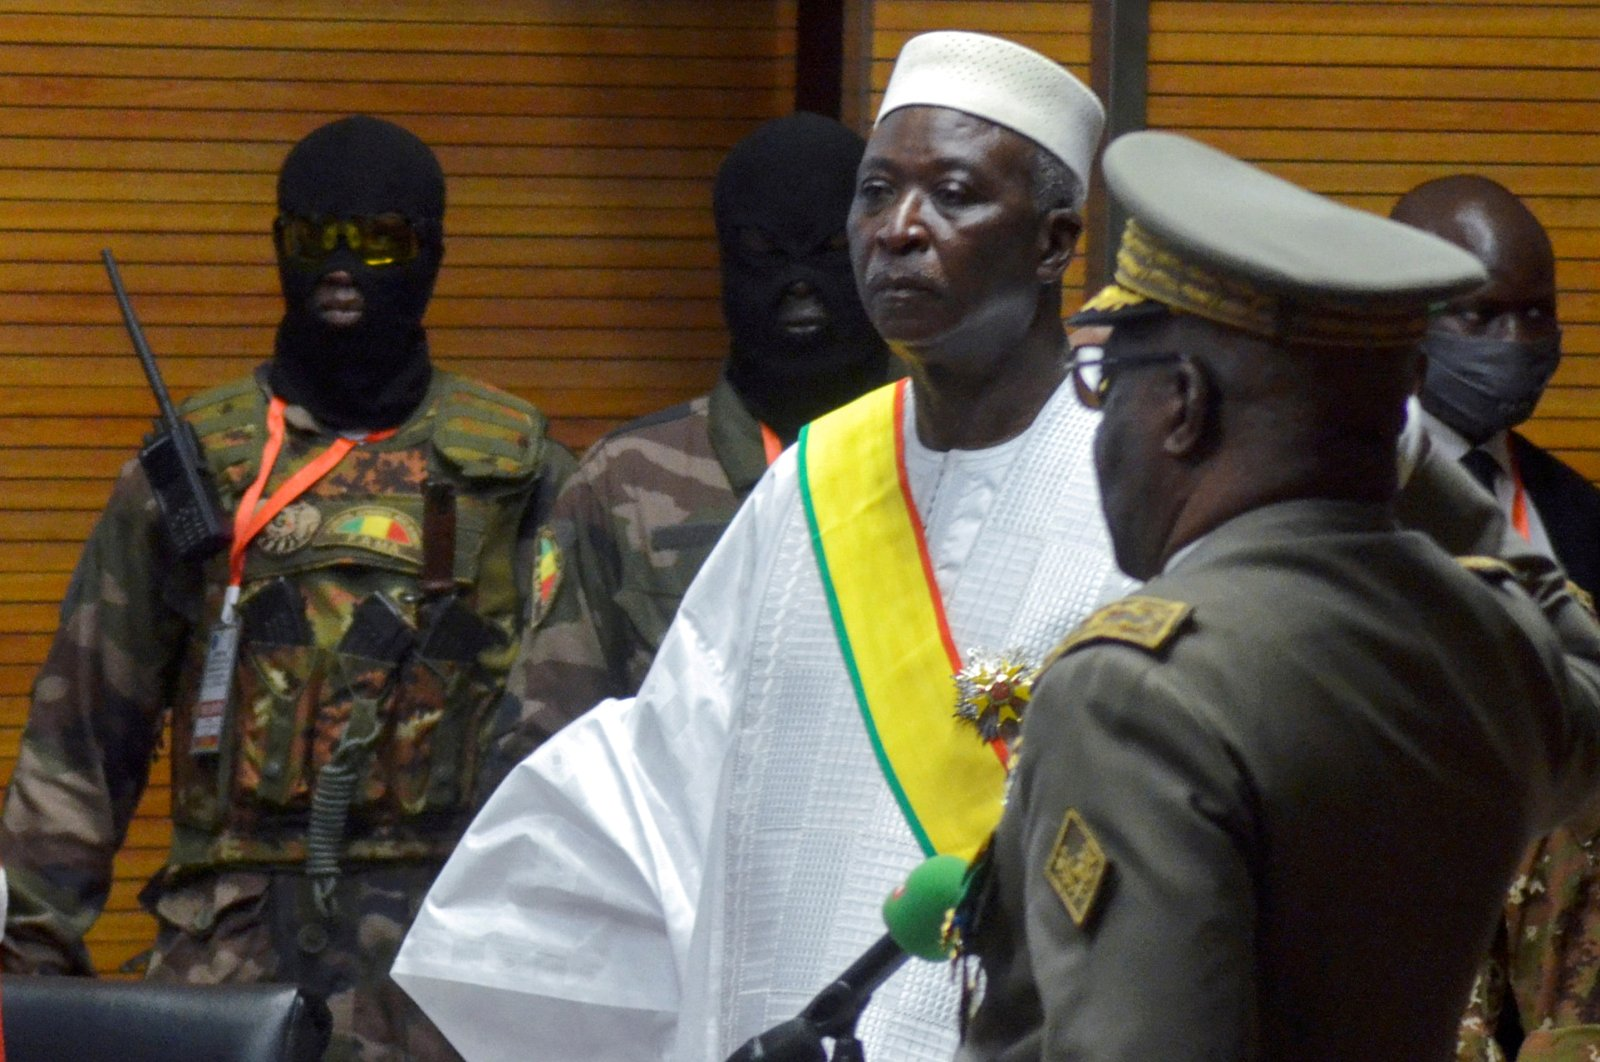 Mali's new interim President Bah Ndaw is sworn in during the inauguration ceremony in Bamako, Mali, Sept. 25, 2020. (Reuters Photo)